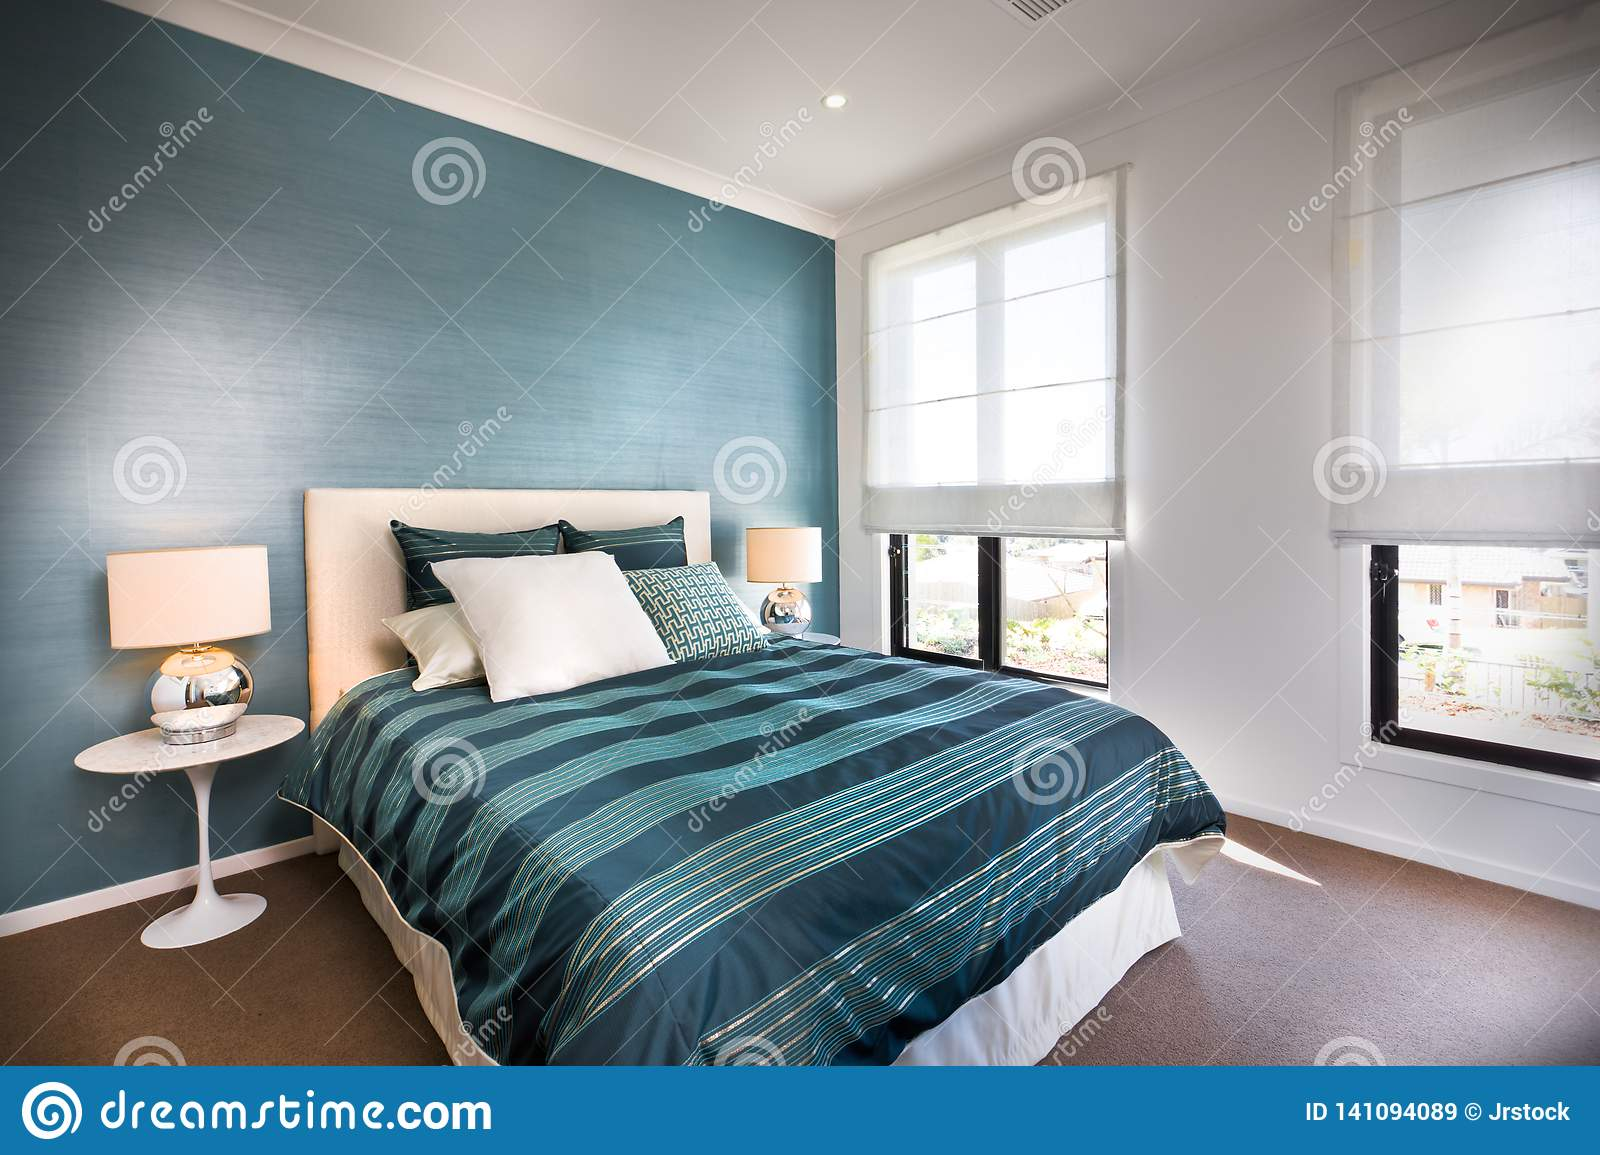 Close Up Of A Blue Decorative Bedroom With White Walls Stock